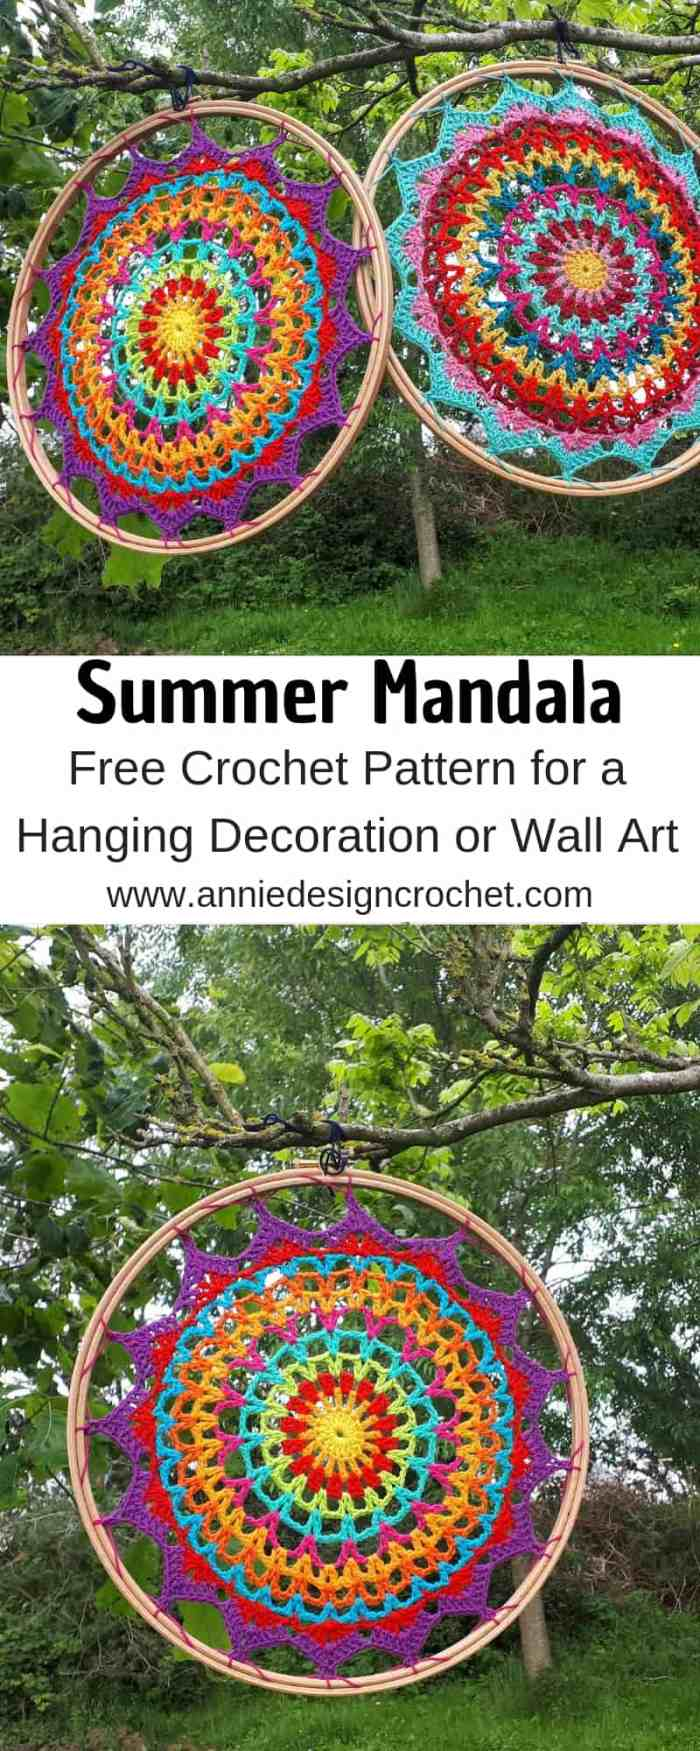 crochet mandala free pattern dream catcher wall art